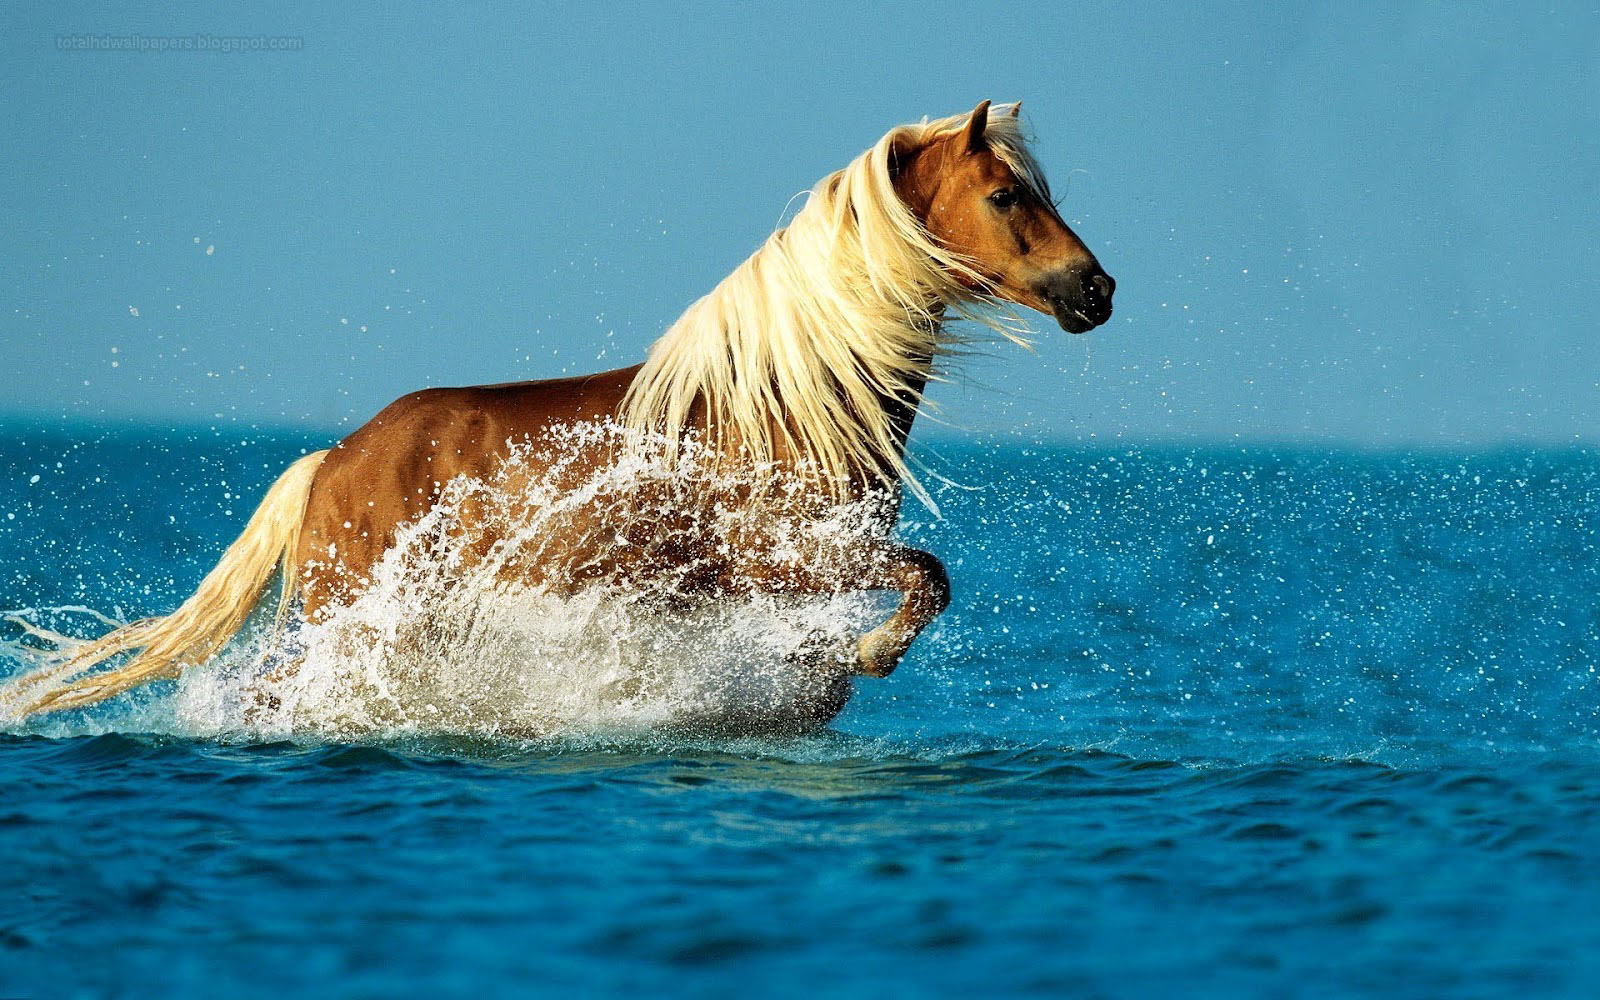 Wonderful   Wallpaper Horse Stunning - horse+wallpapers+hd+(3)  Perfect Image Reference_813319.jpg